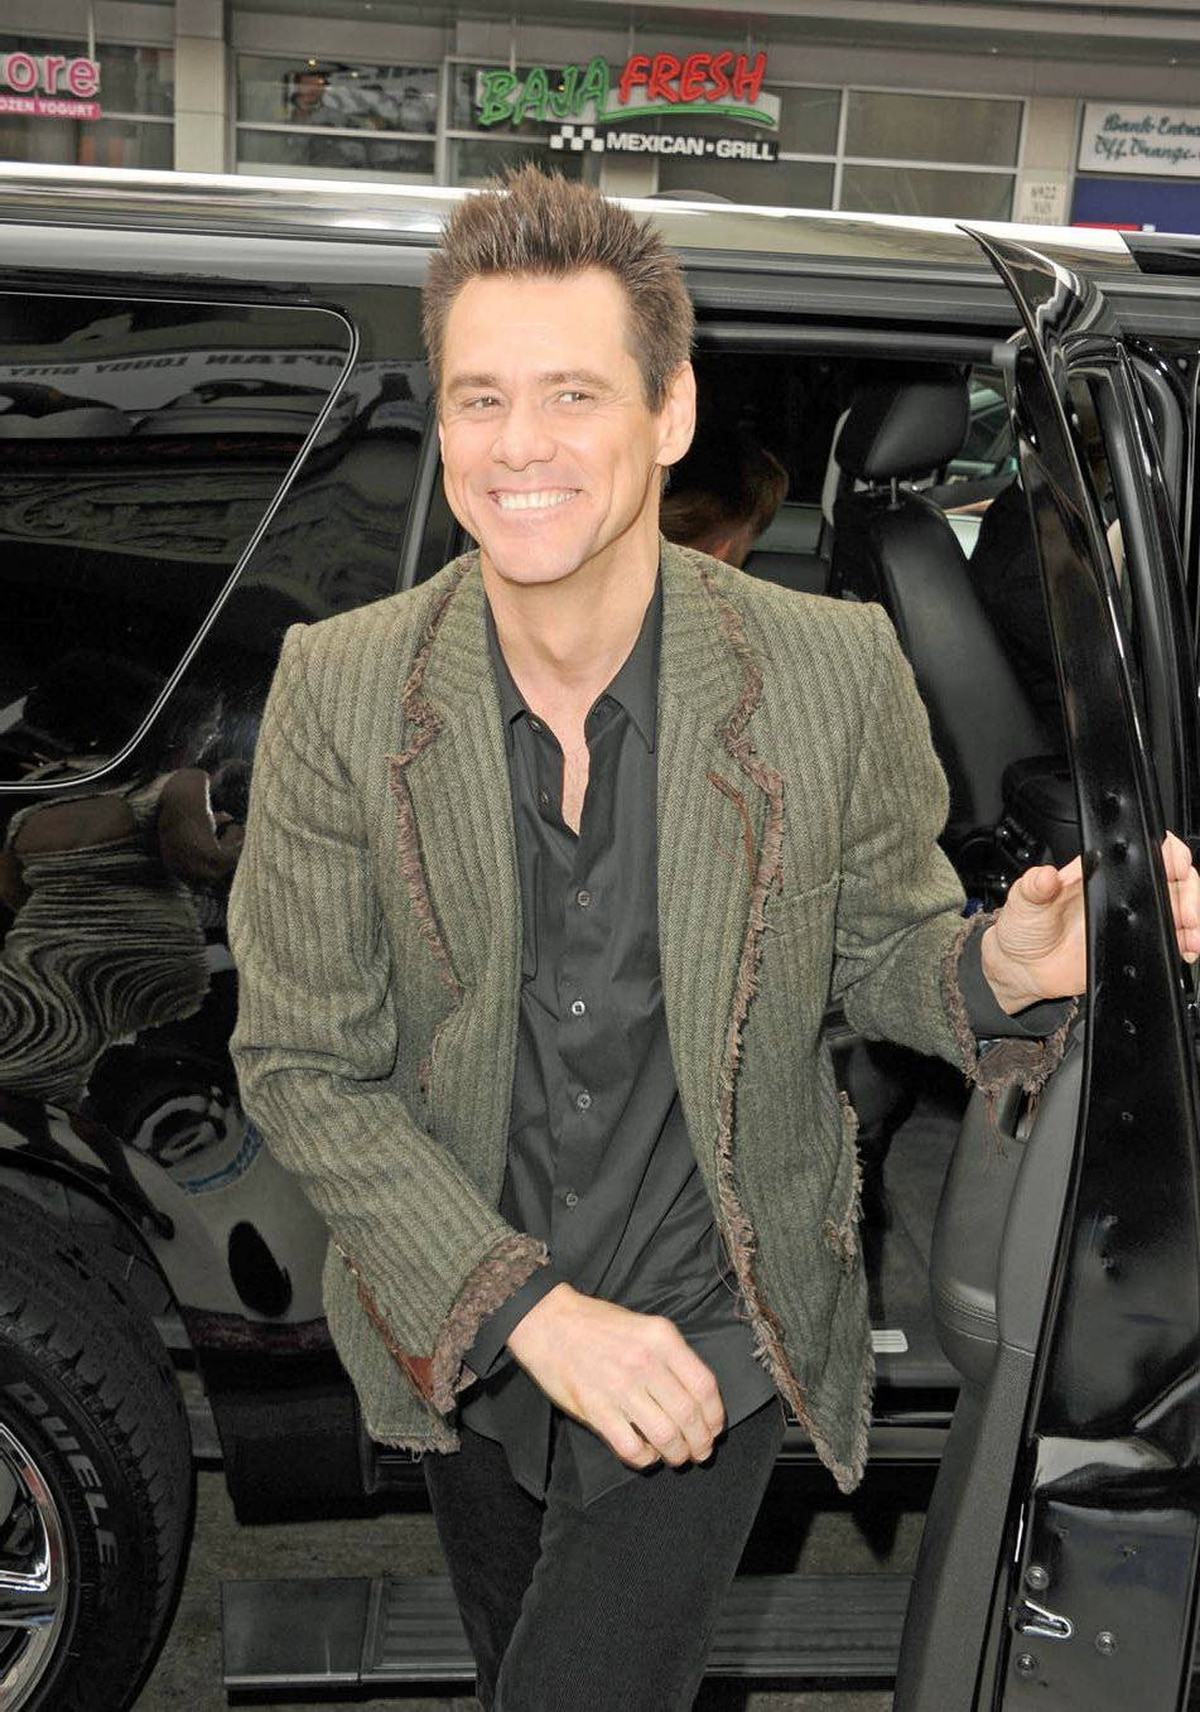 Jim Carrey arrives at the premiere of 20th Century Fox's Mr. Popper's Penguins held at Grauman's Chinese Theatre on June 12, 2011 in Hollywood.